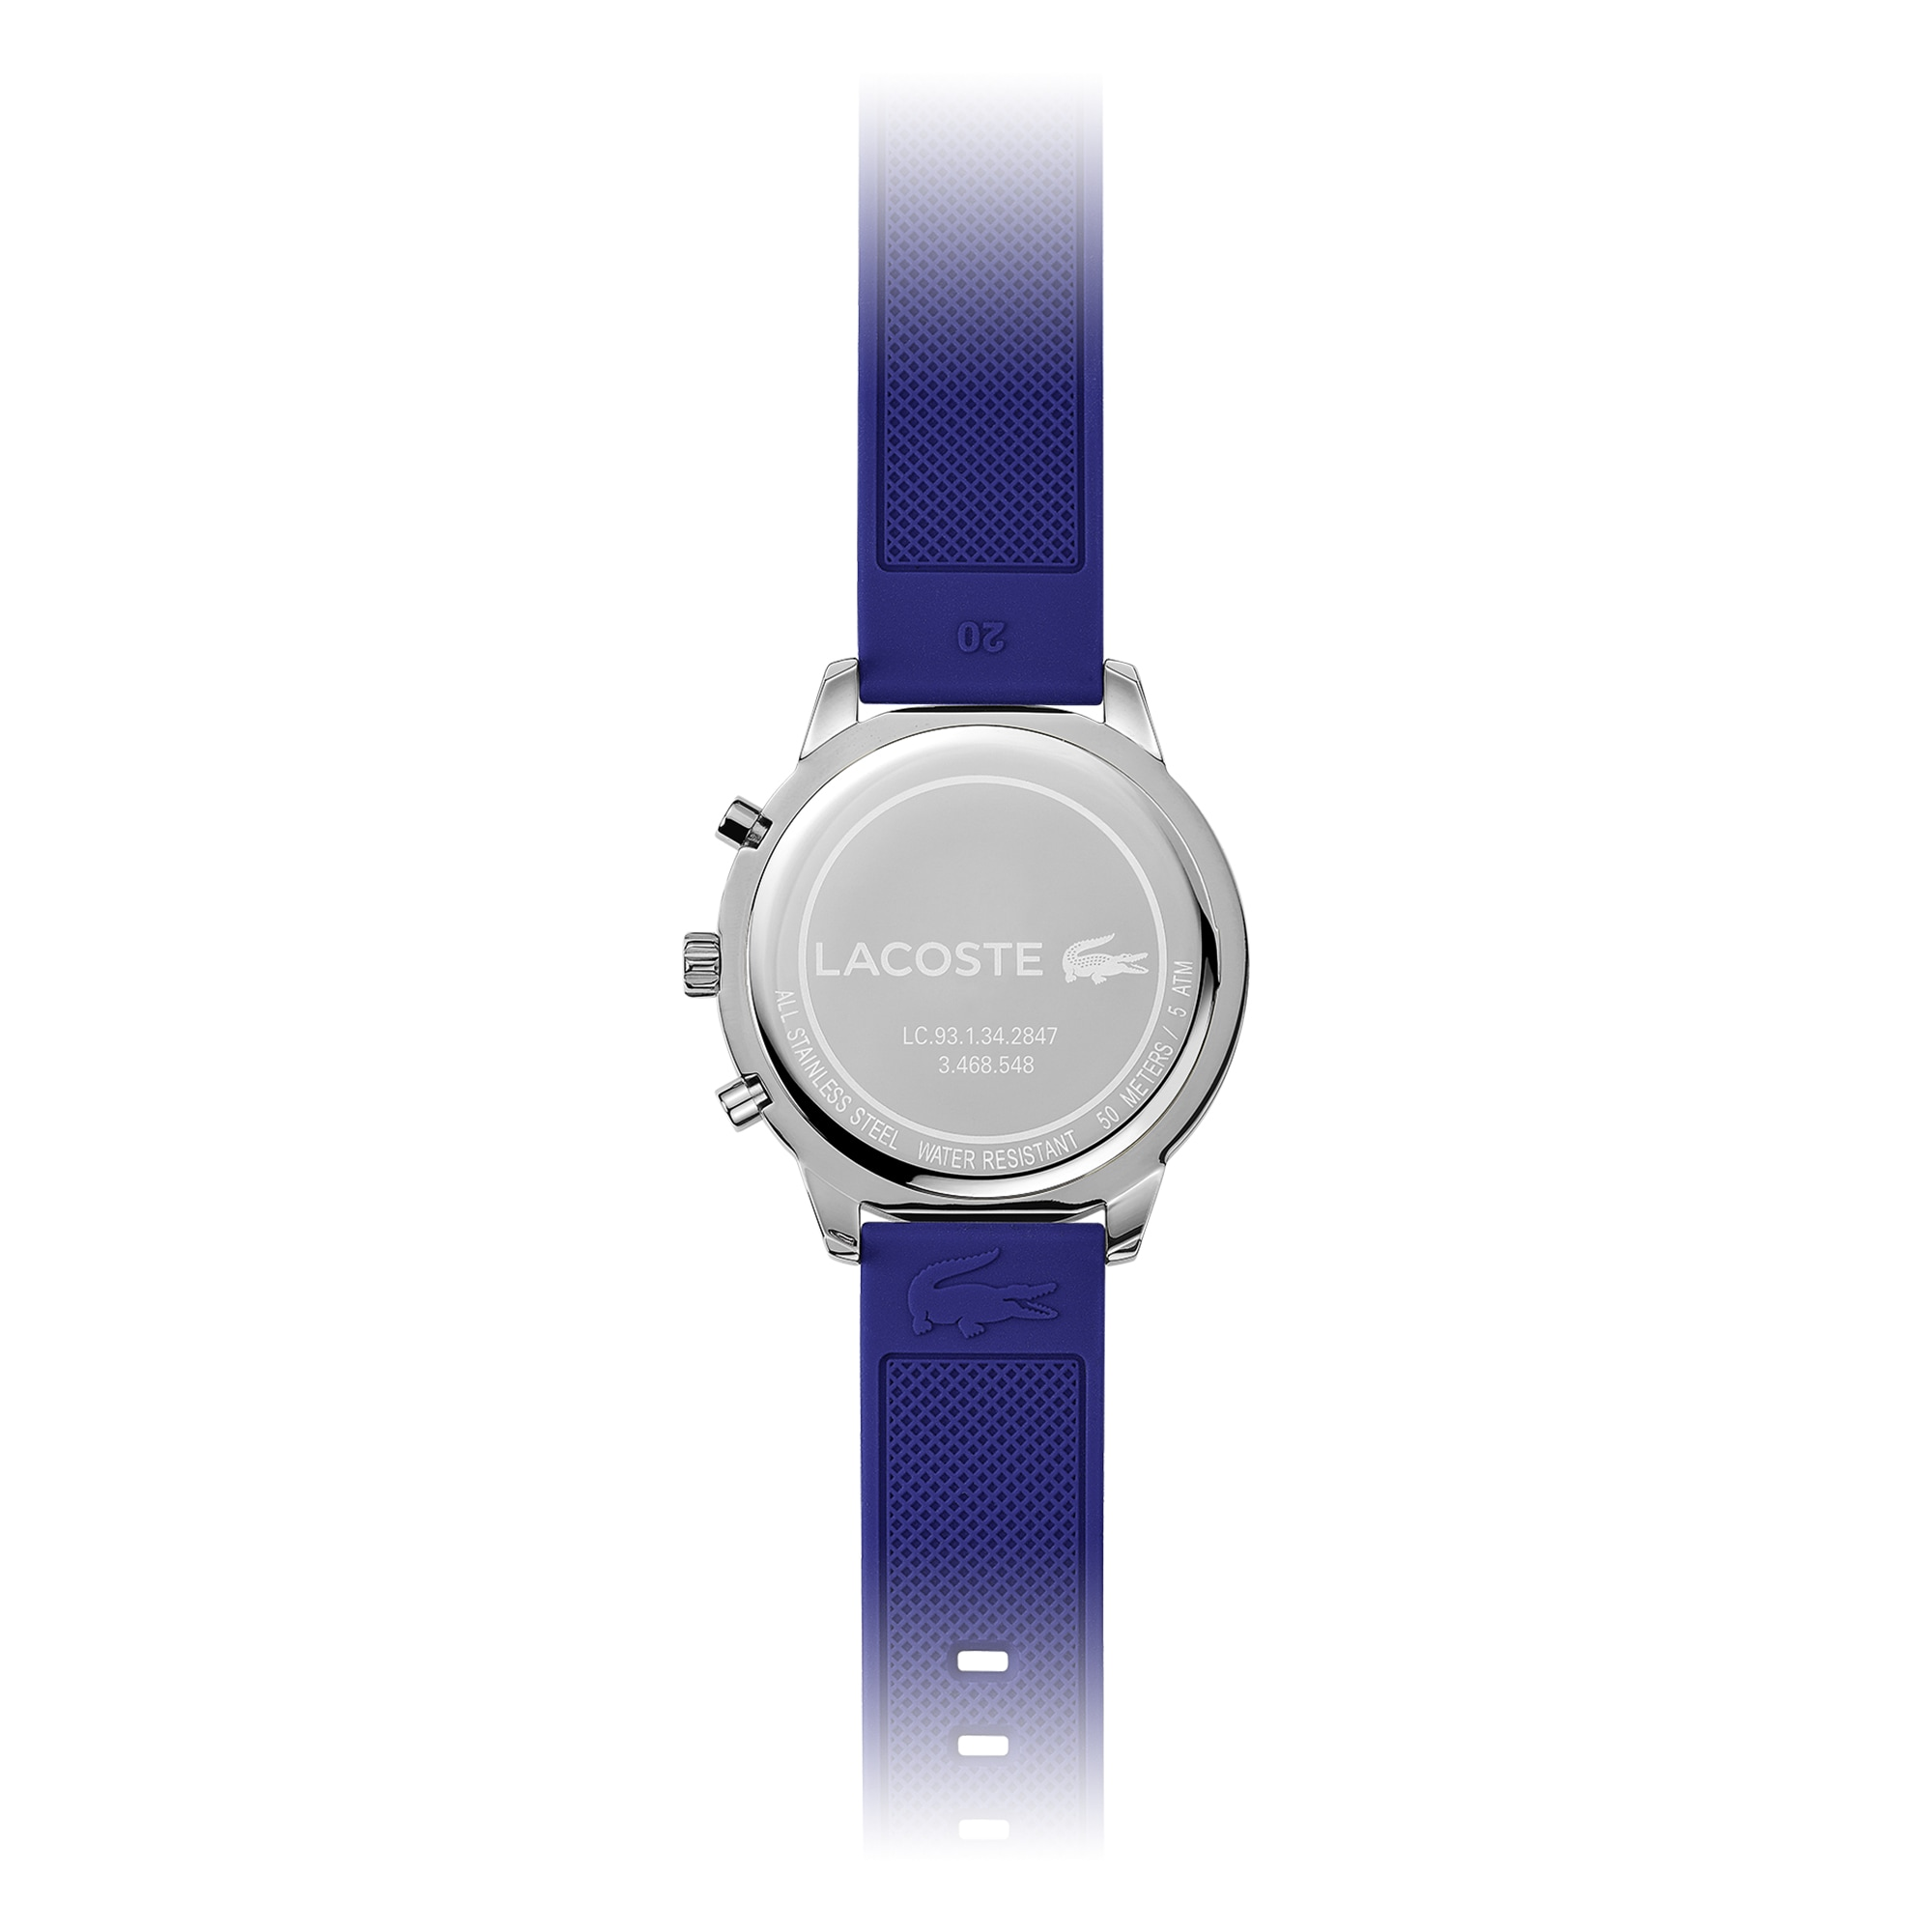 Gents Key West Watch with Blue Silicone Strap